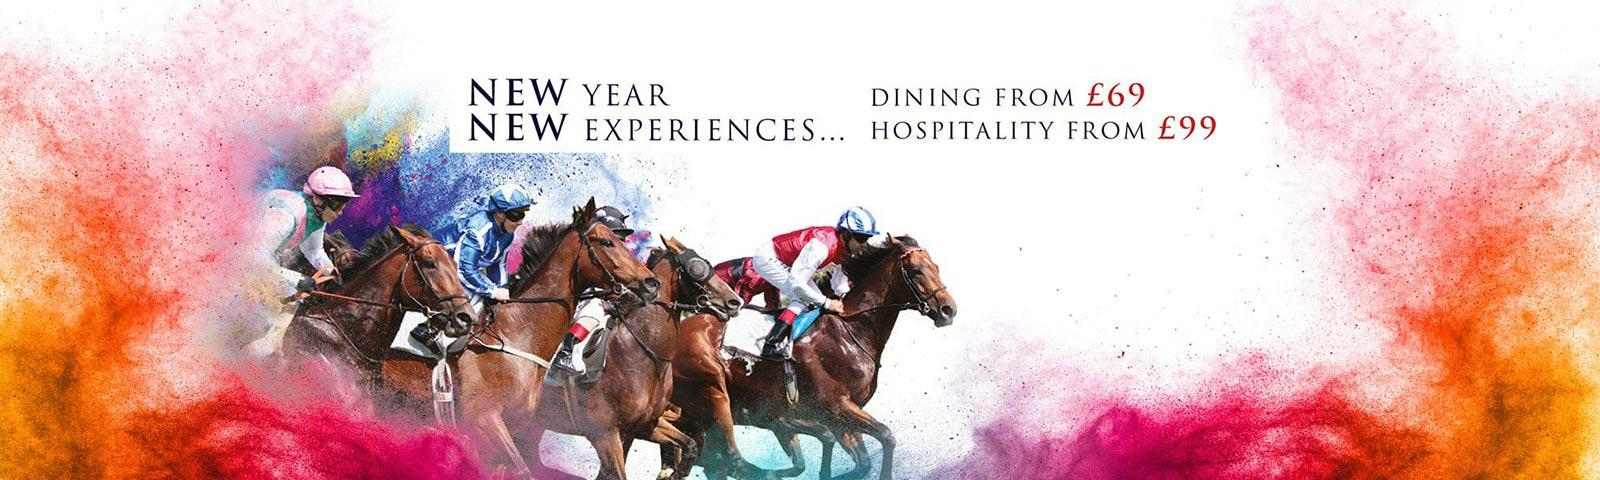 Promotional banner for hospitality packages, featuring a group of racing jockeys.